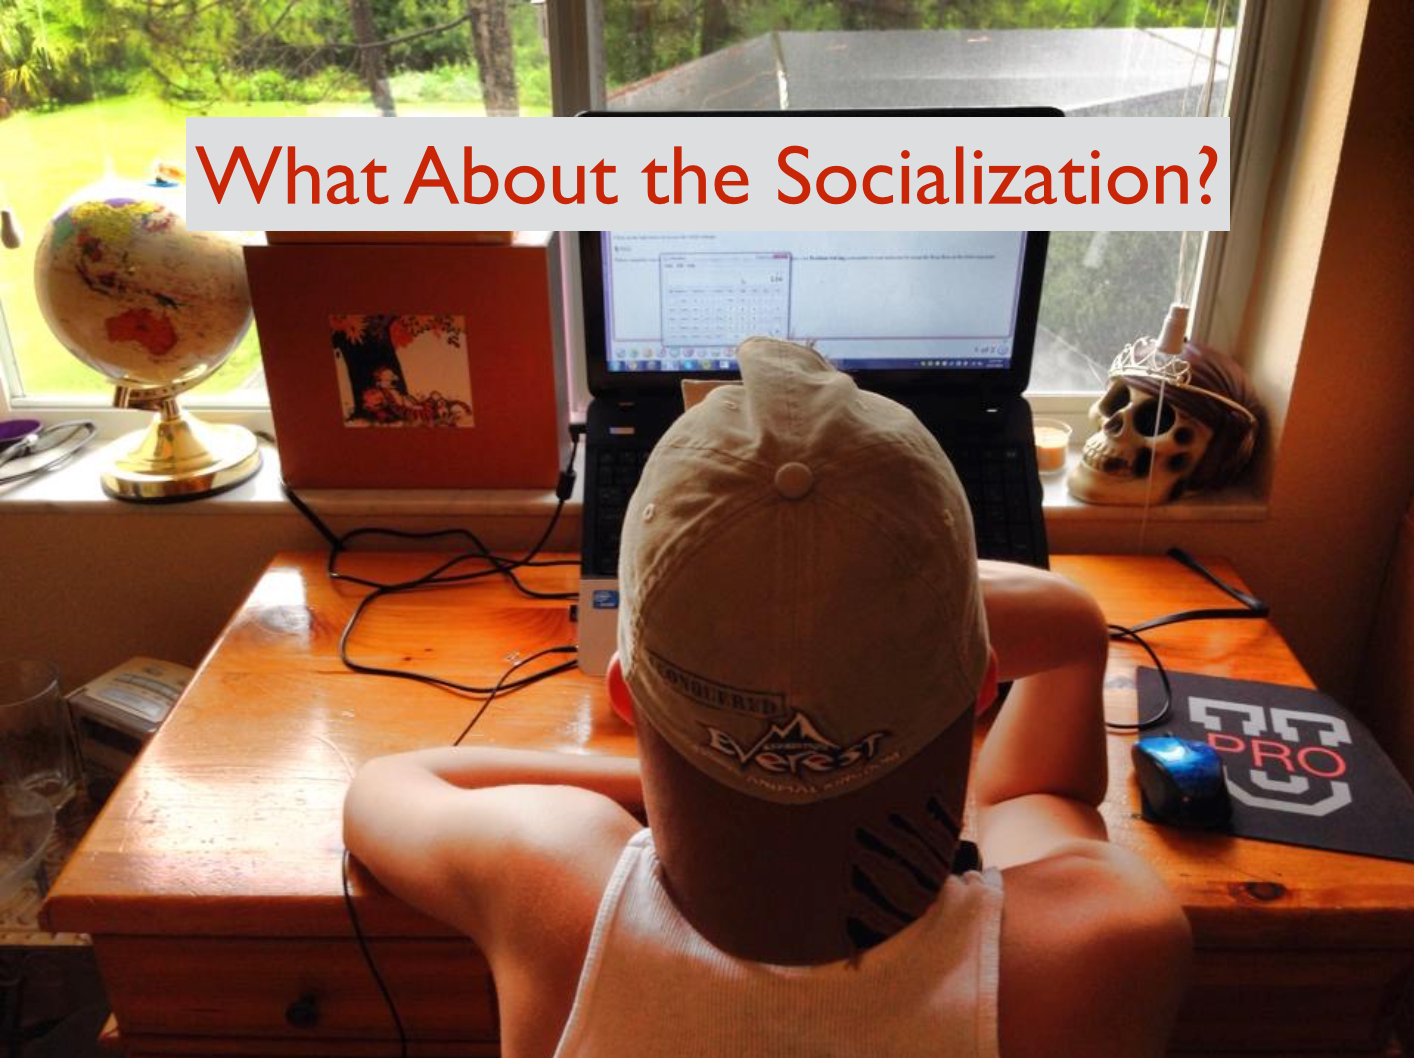 /Users/melissaknecht/Desktop/pics/What About the Socialization